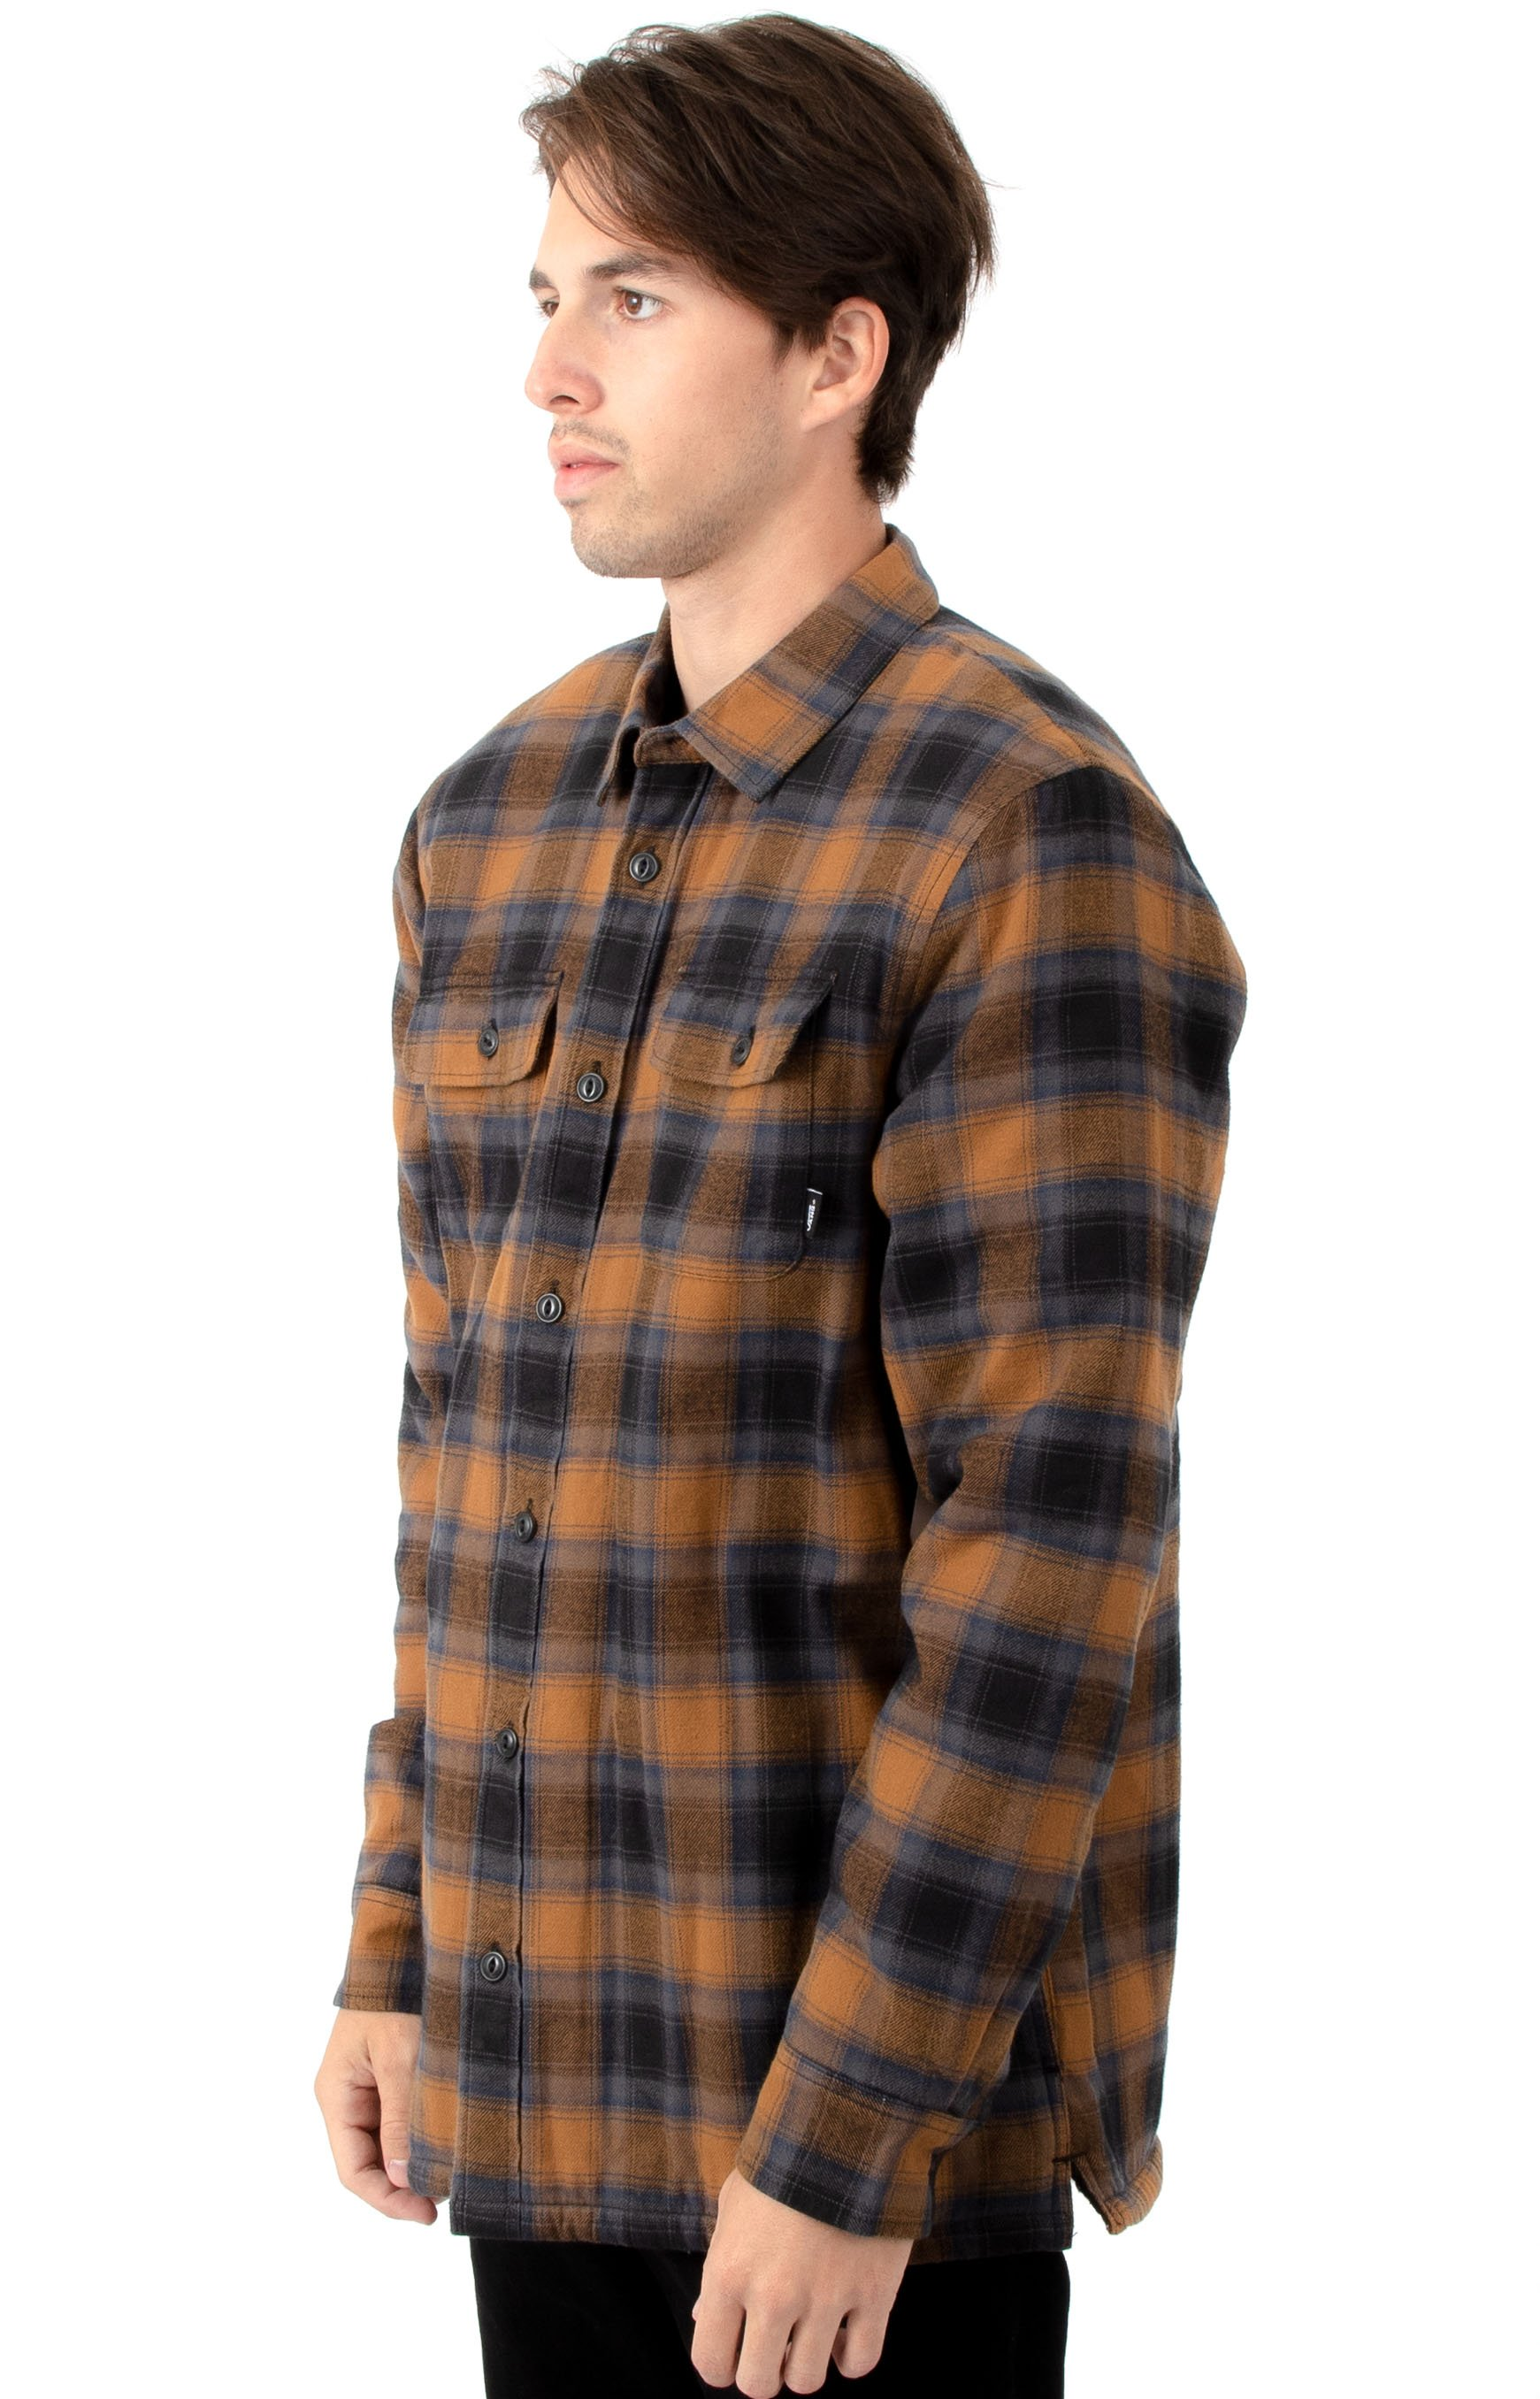 Loomis Button-Up Shirt - Black/Rubber 2